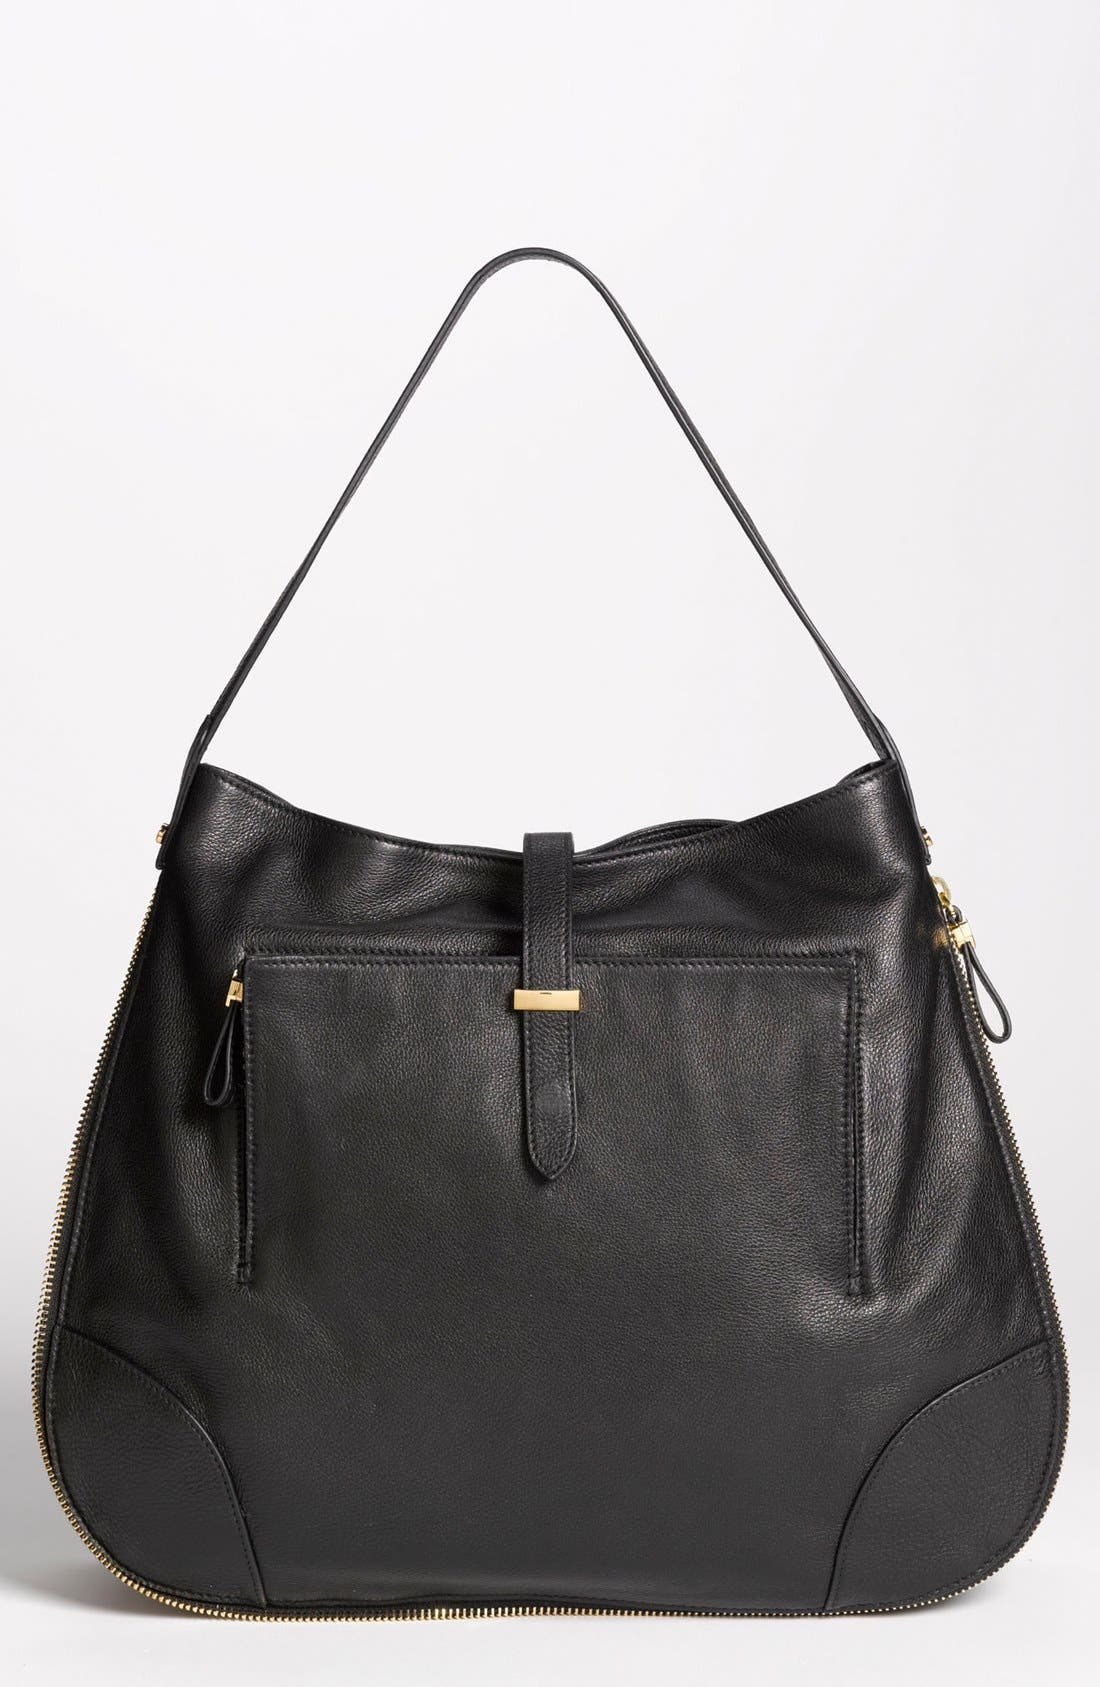 Alternate Image 1 Selected - Tory Burch 'Clay - Classic' Leather Hobo